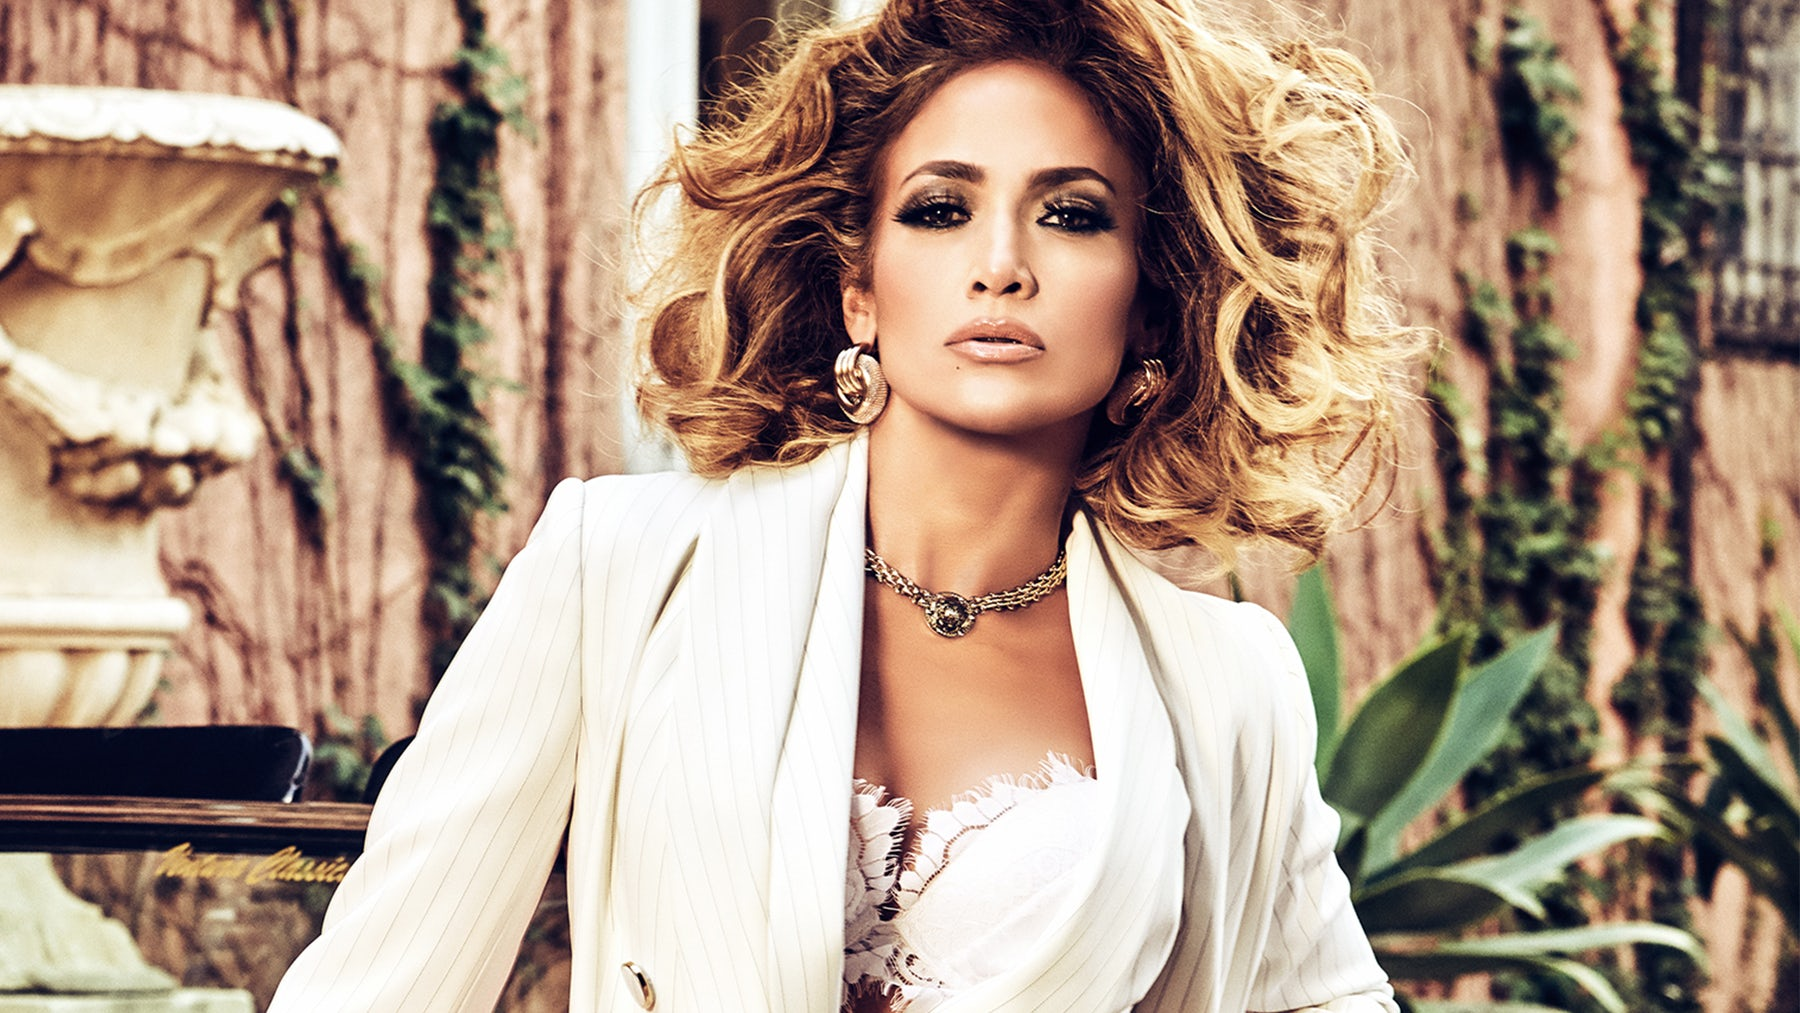 Why The Fashion Industry Is Betting Big On Jennifer Lopez News Analysis Bof